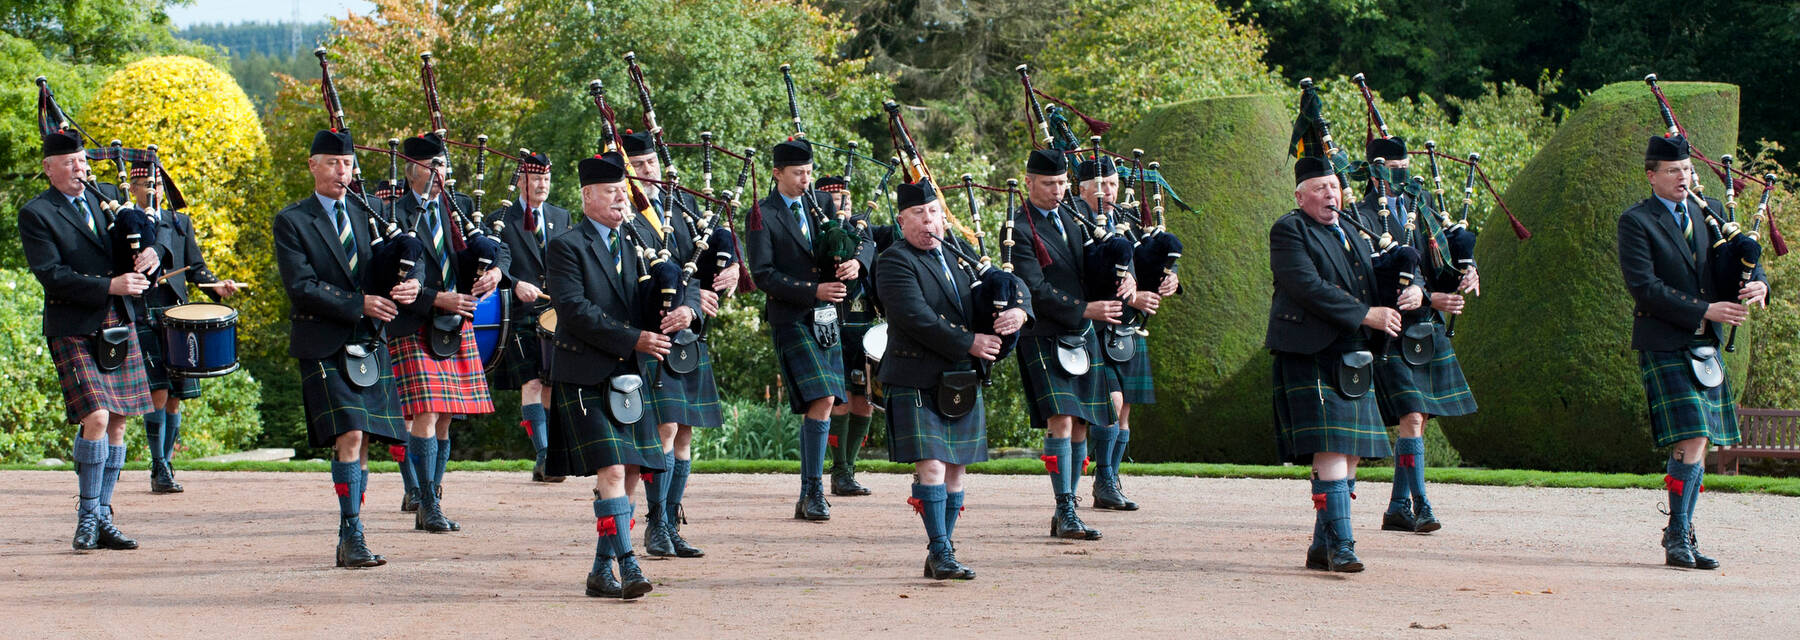 Pipe band playing and walking up the driveway at Crathes Castle